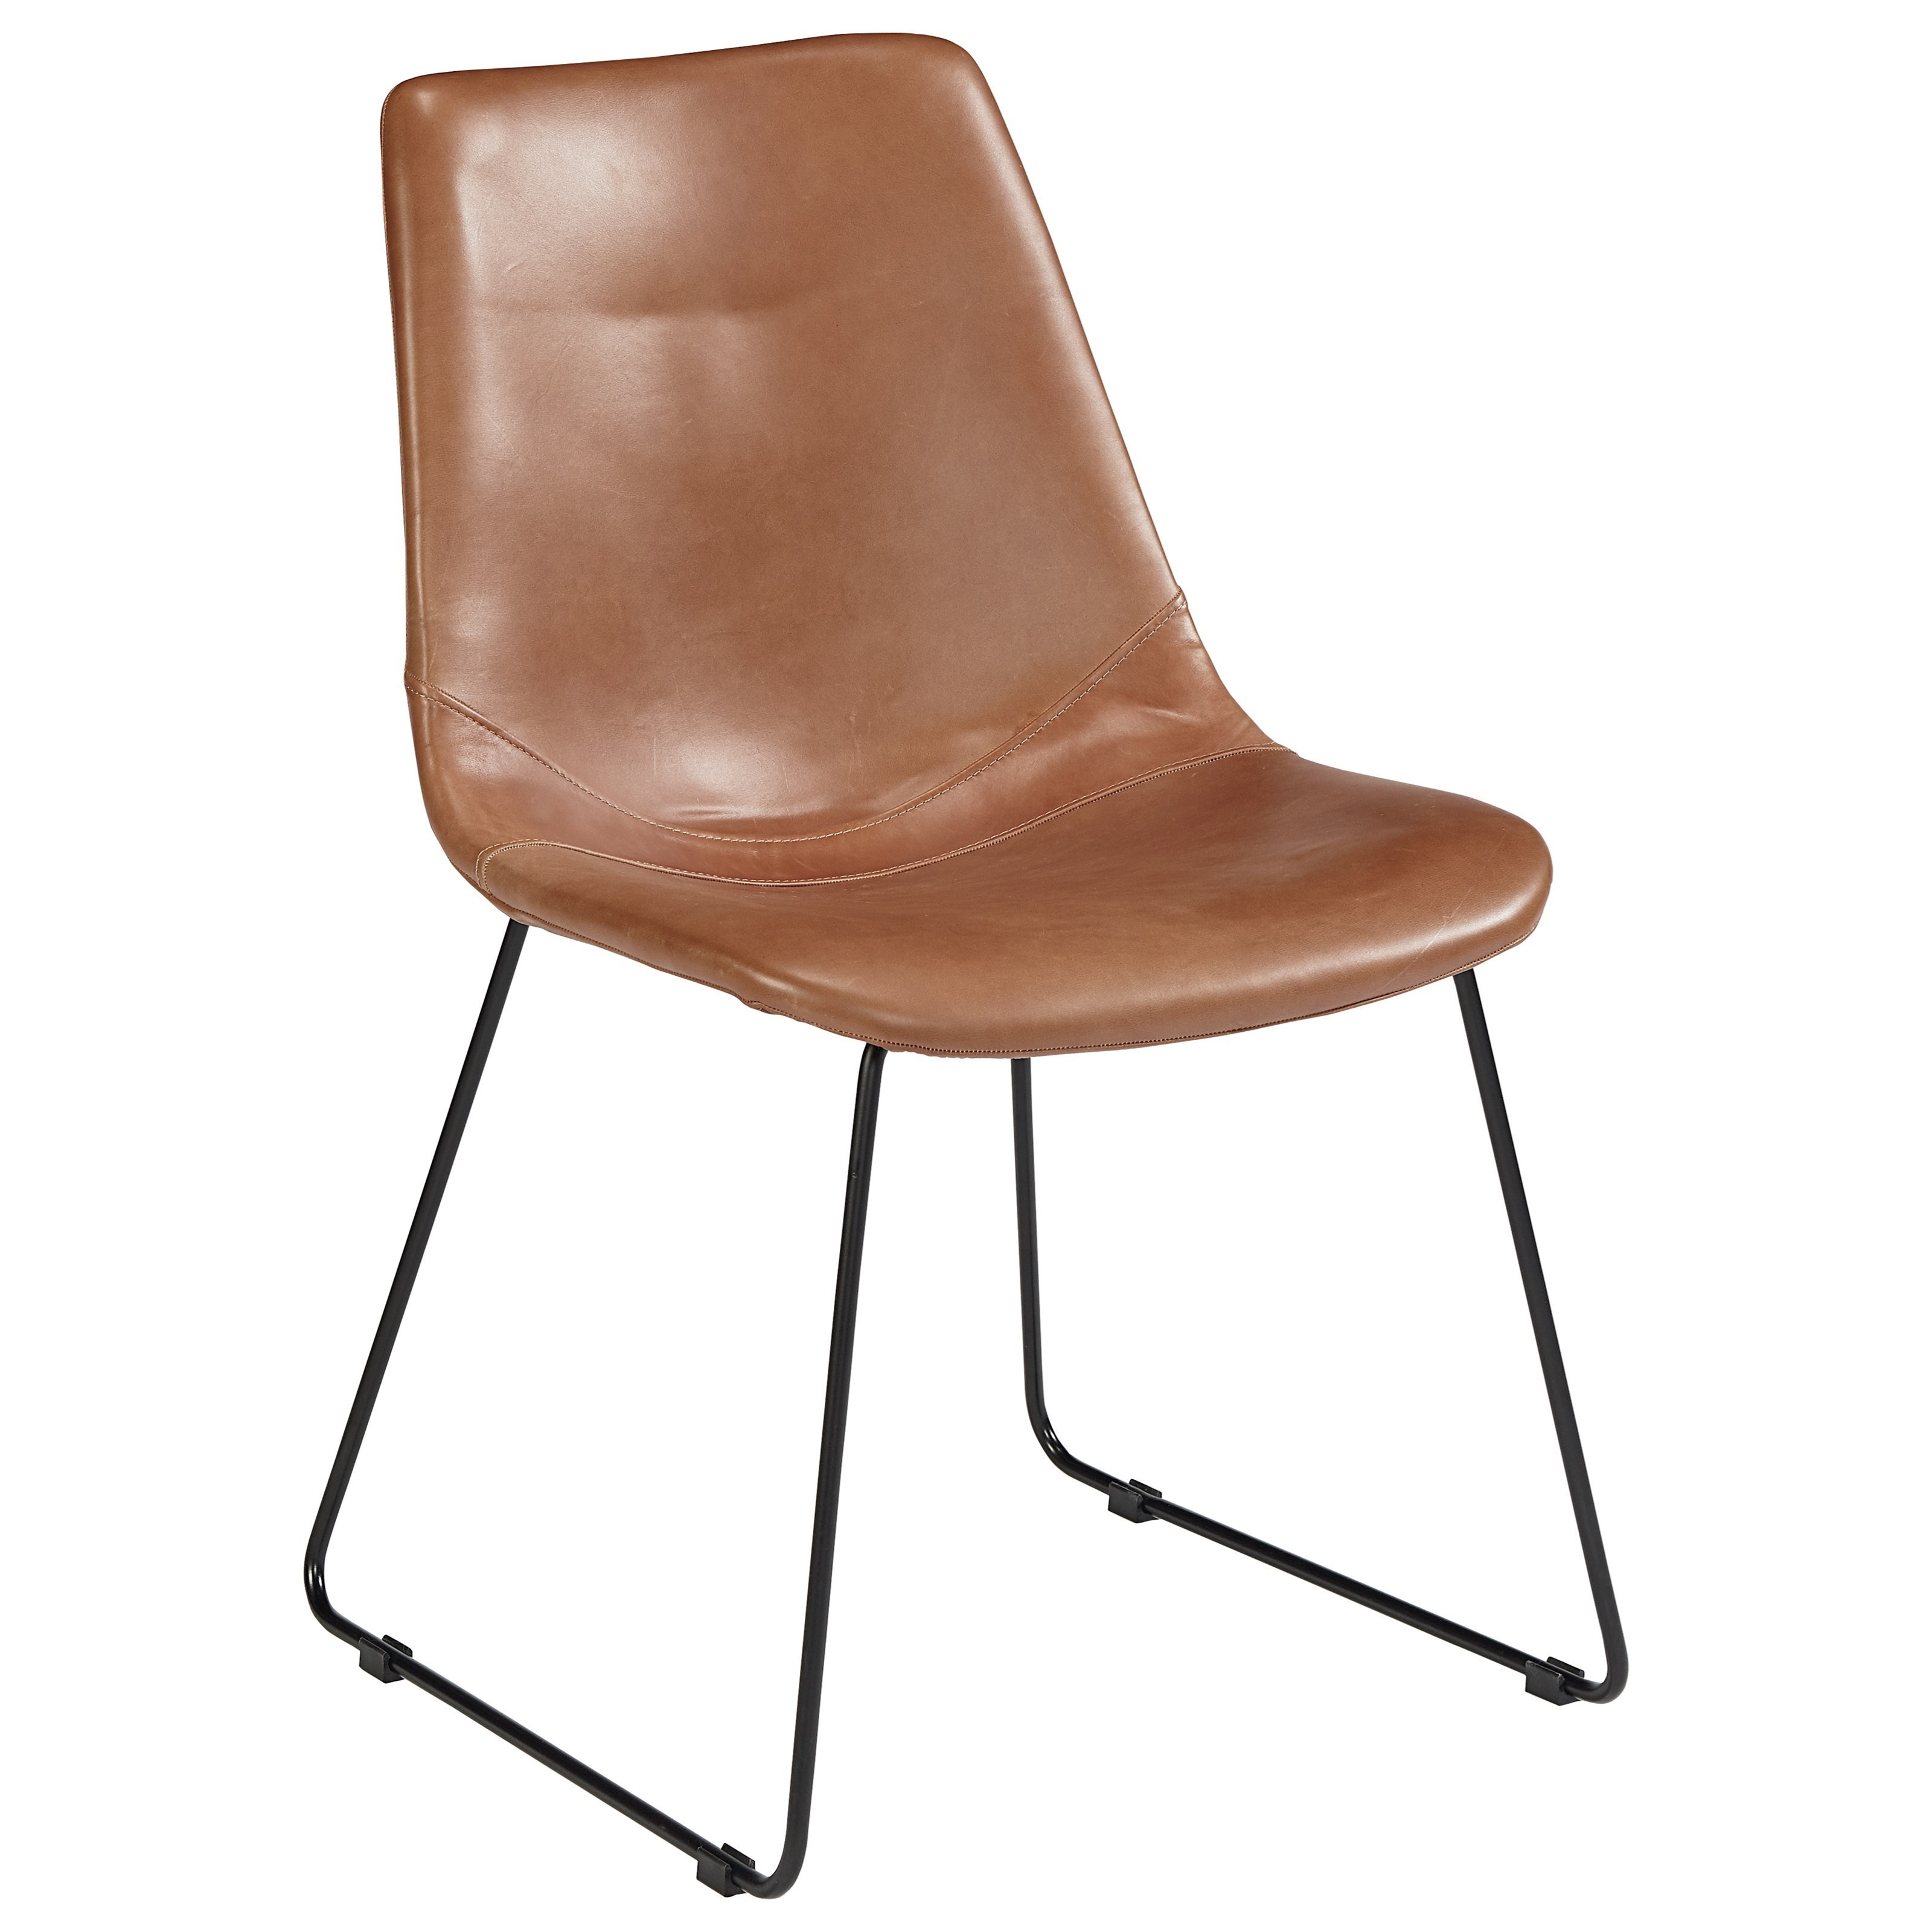 Molded Shell Side Chair